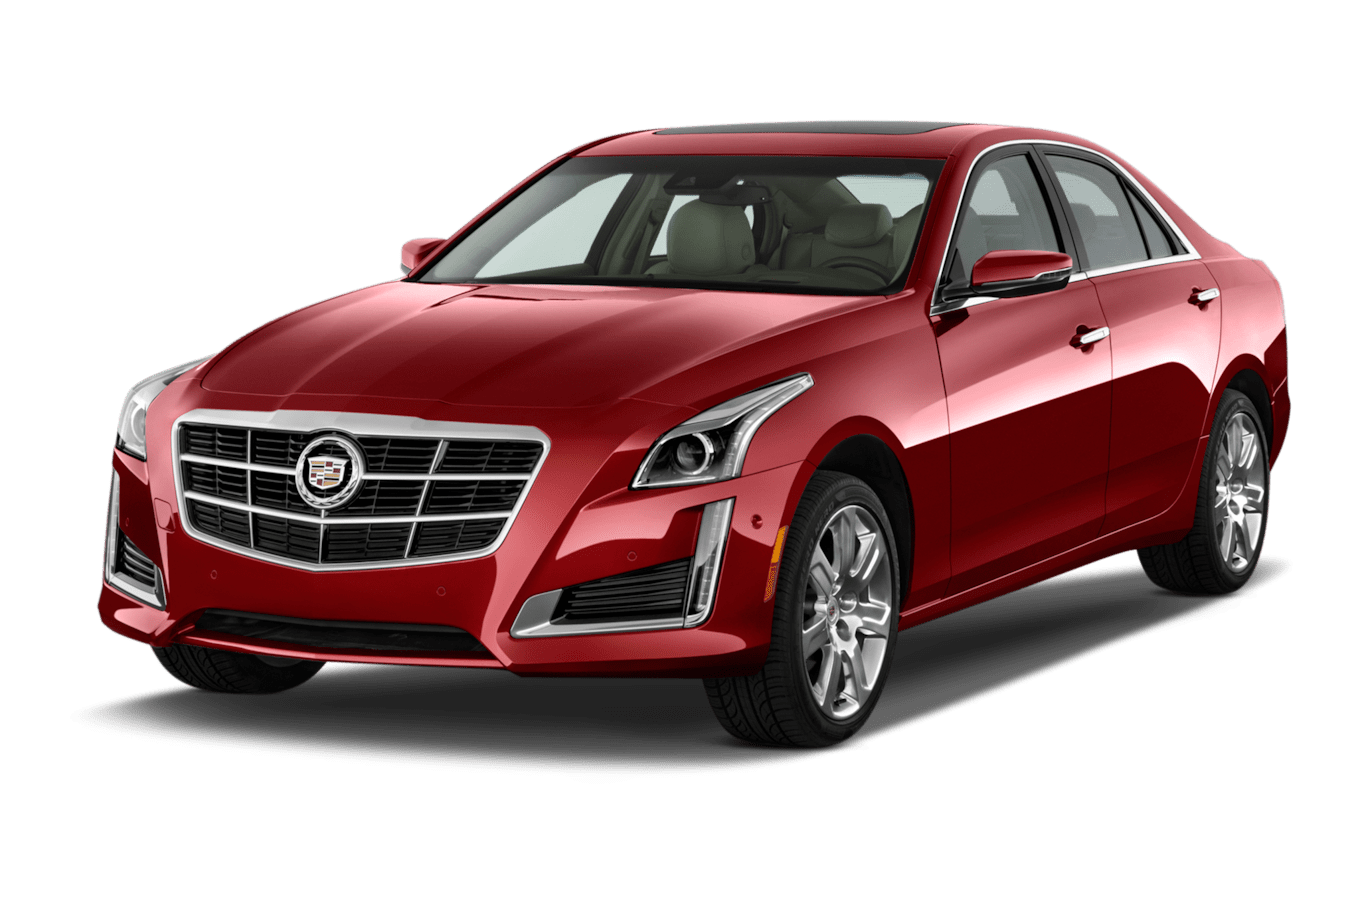 2014 cadillac cts reviews and rating motortrend2014 cadillac cts wiring 12 [ 392:261 x 1360 Pixel ]